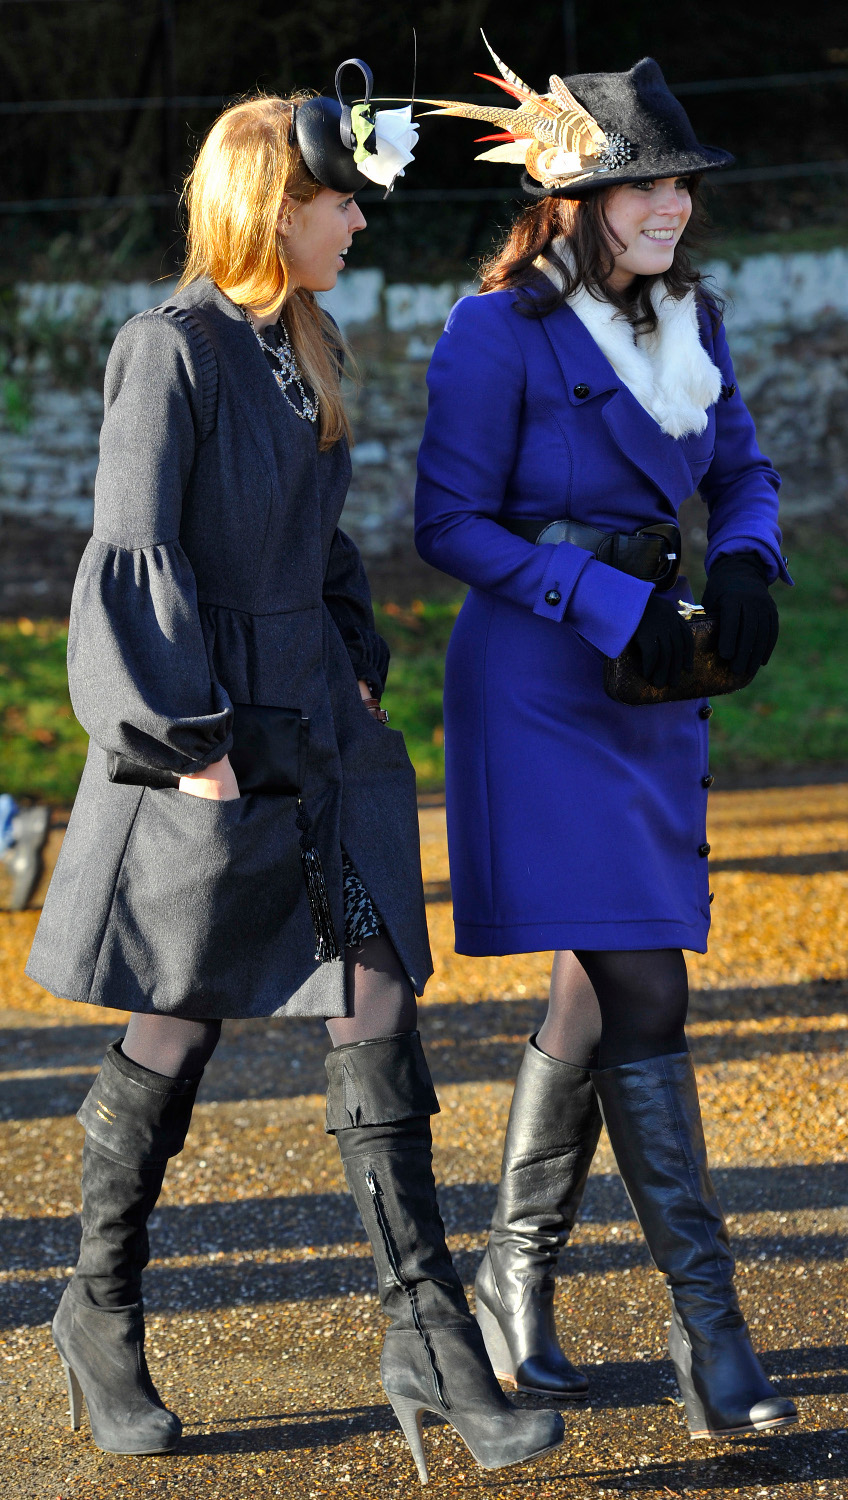 Britain's Princess Eugenie (R) and Princess Beatrice (L) leave after a Christmas Day service at St Mary Magdalene Church on the Royal estate at Sandringham, Norfolk, in east England, December 25, 2010.  REUTERS/Toby Melville (BRITAIN - Tags: RELIGION ROYALS SOCIETY) - GM1E6CP1PO801